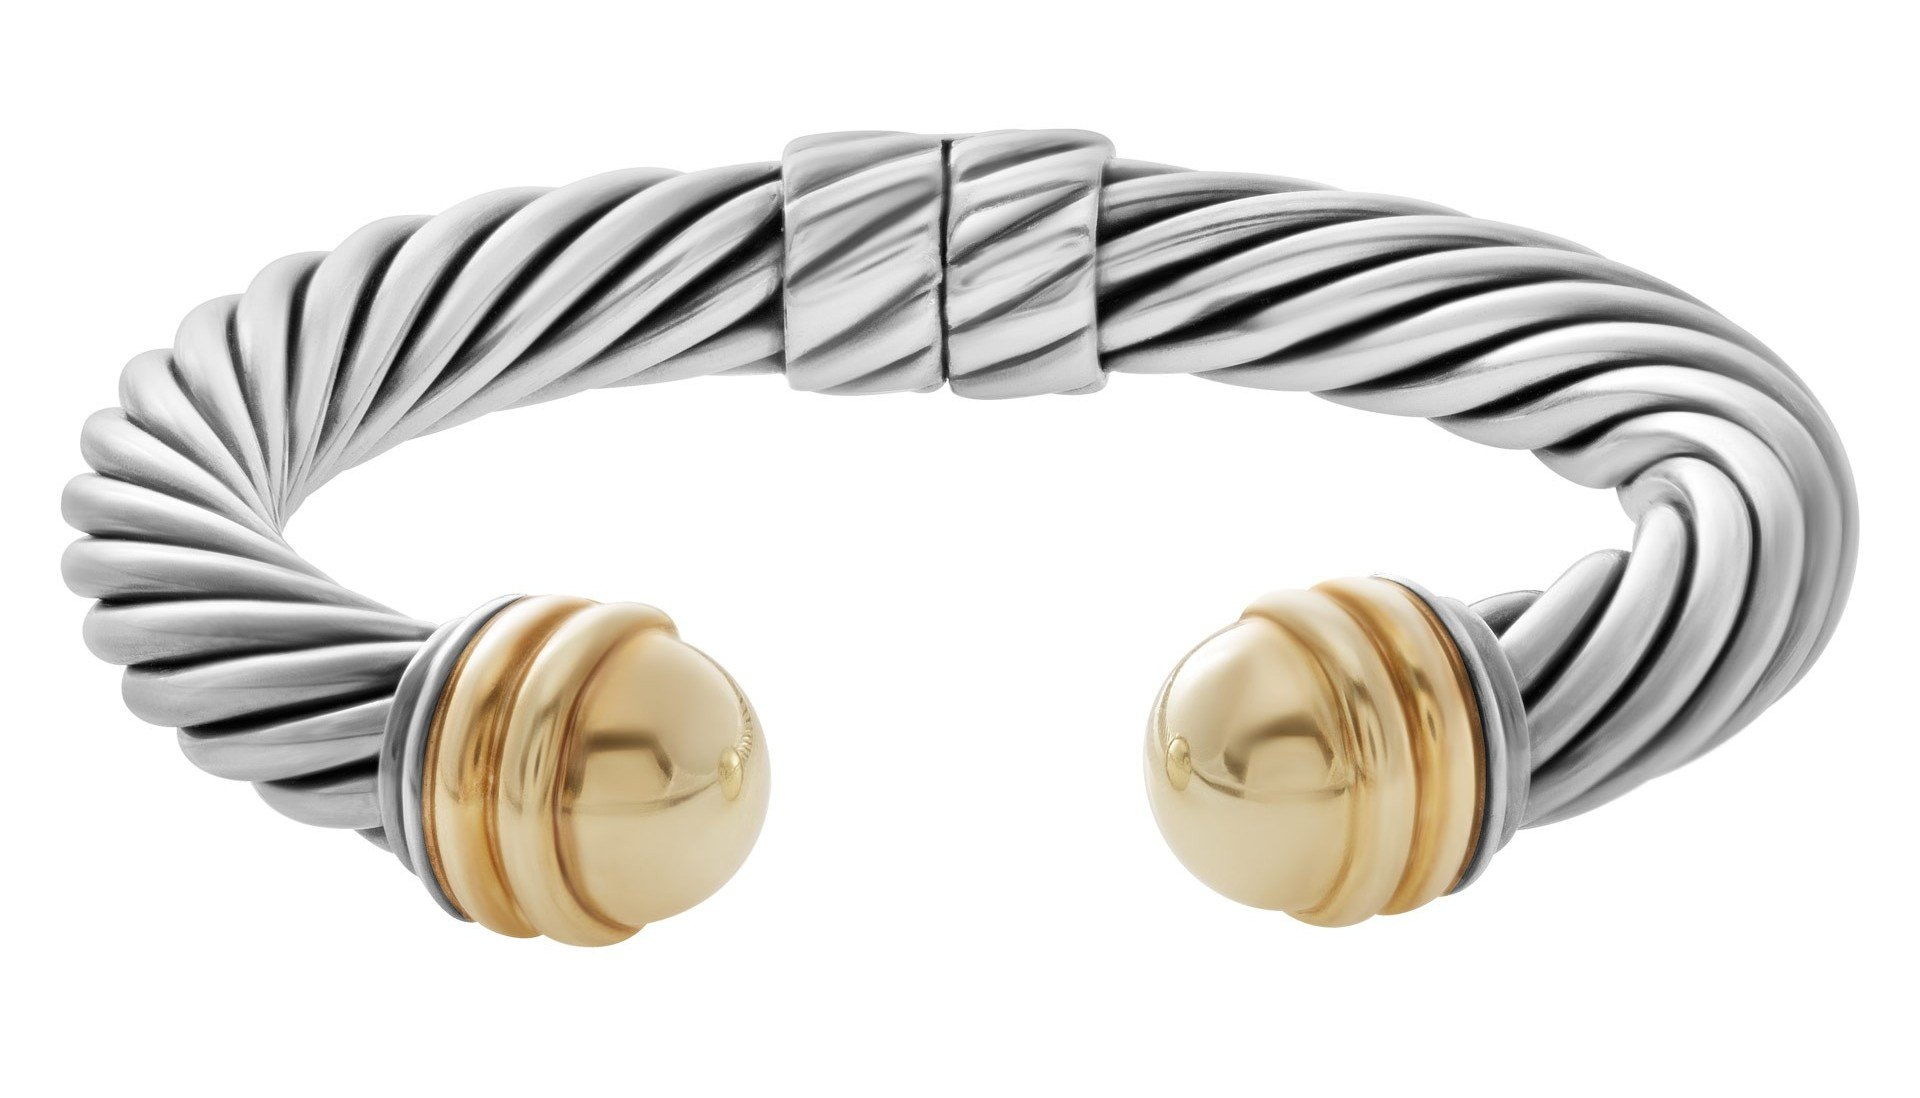 Jewelry icons david yurman cable jewelry for David yurman inspired bracelet cable